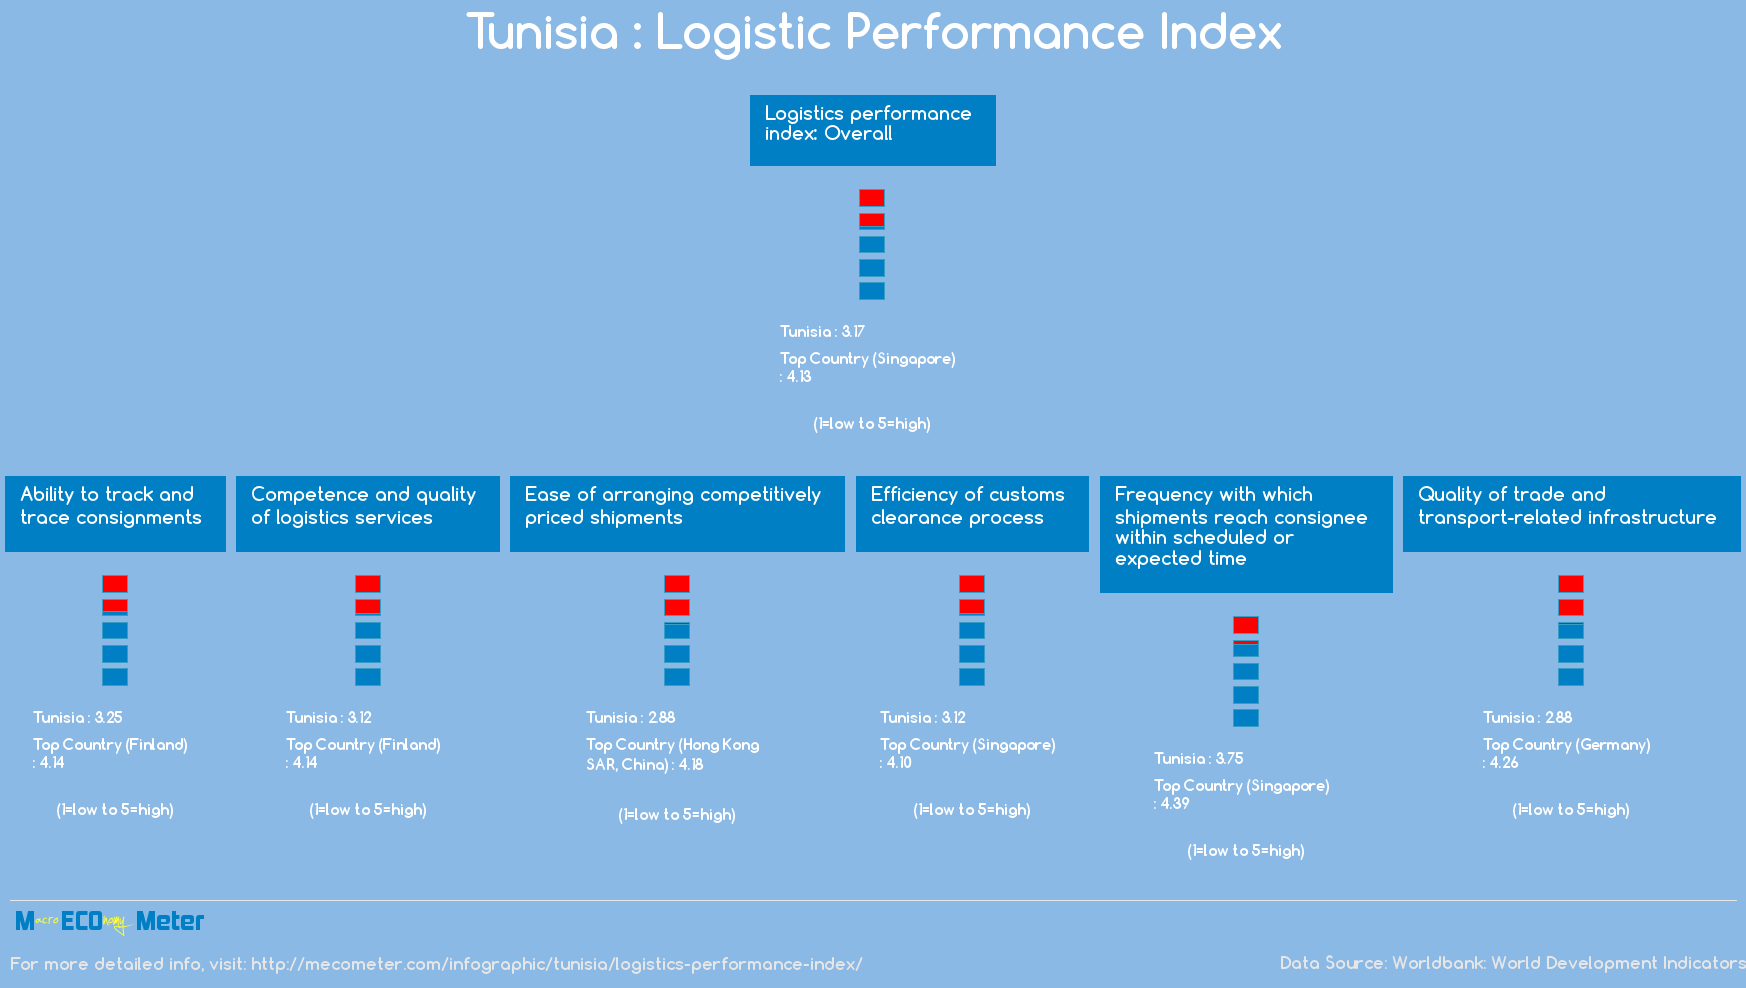 Tunisia : Logistic Performance Index